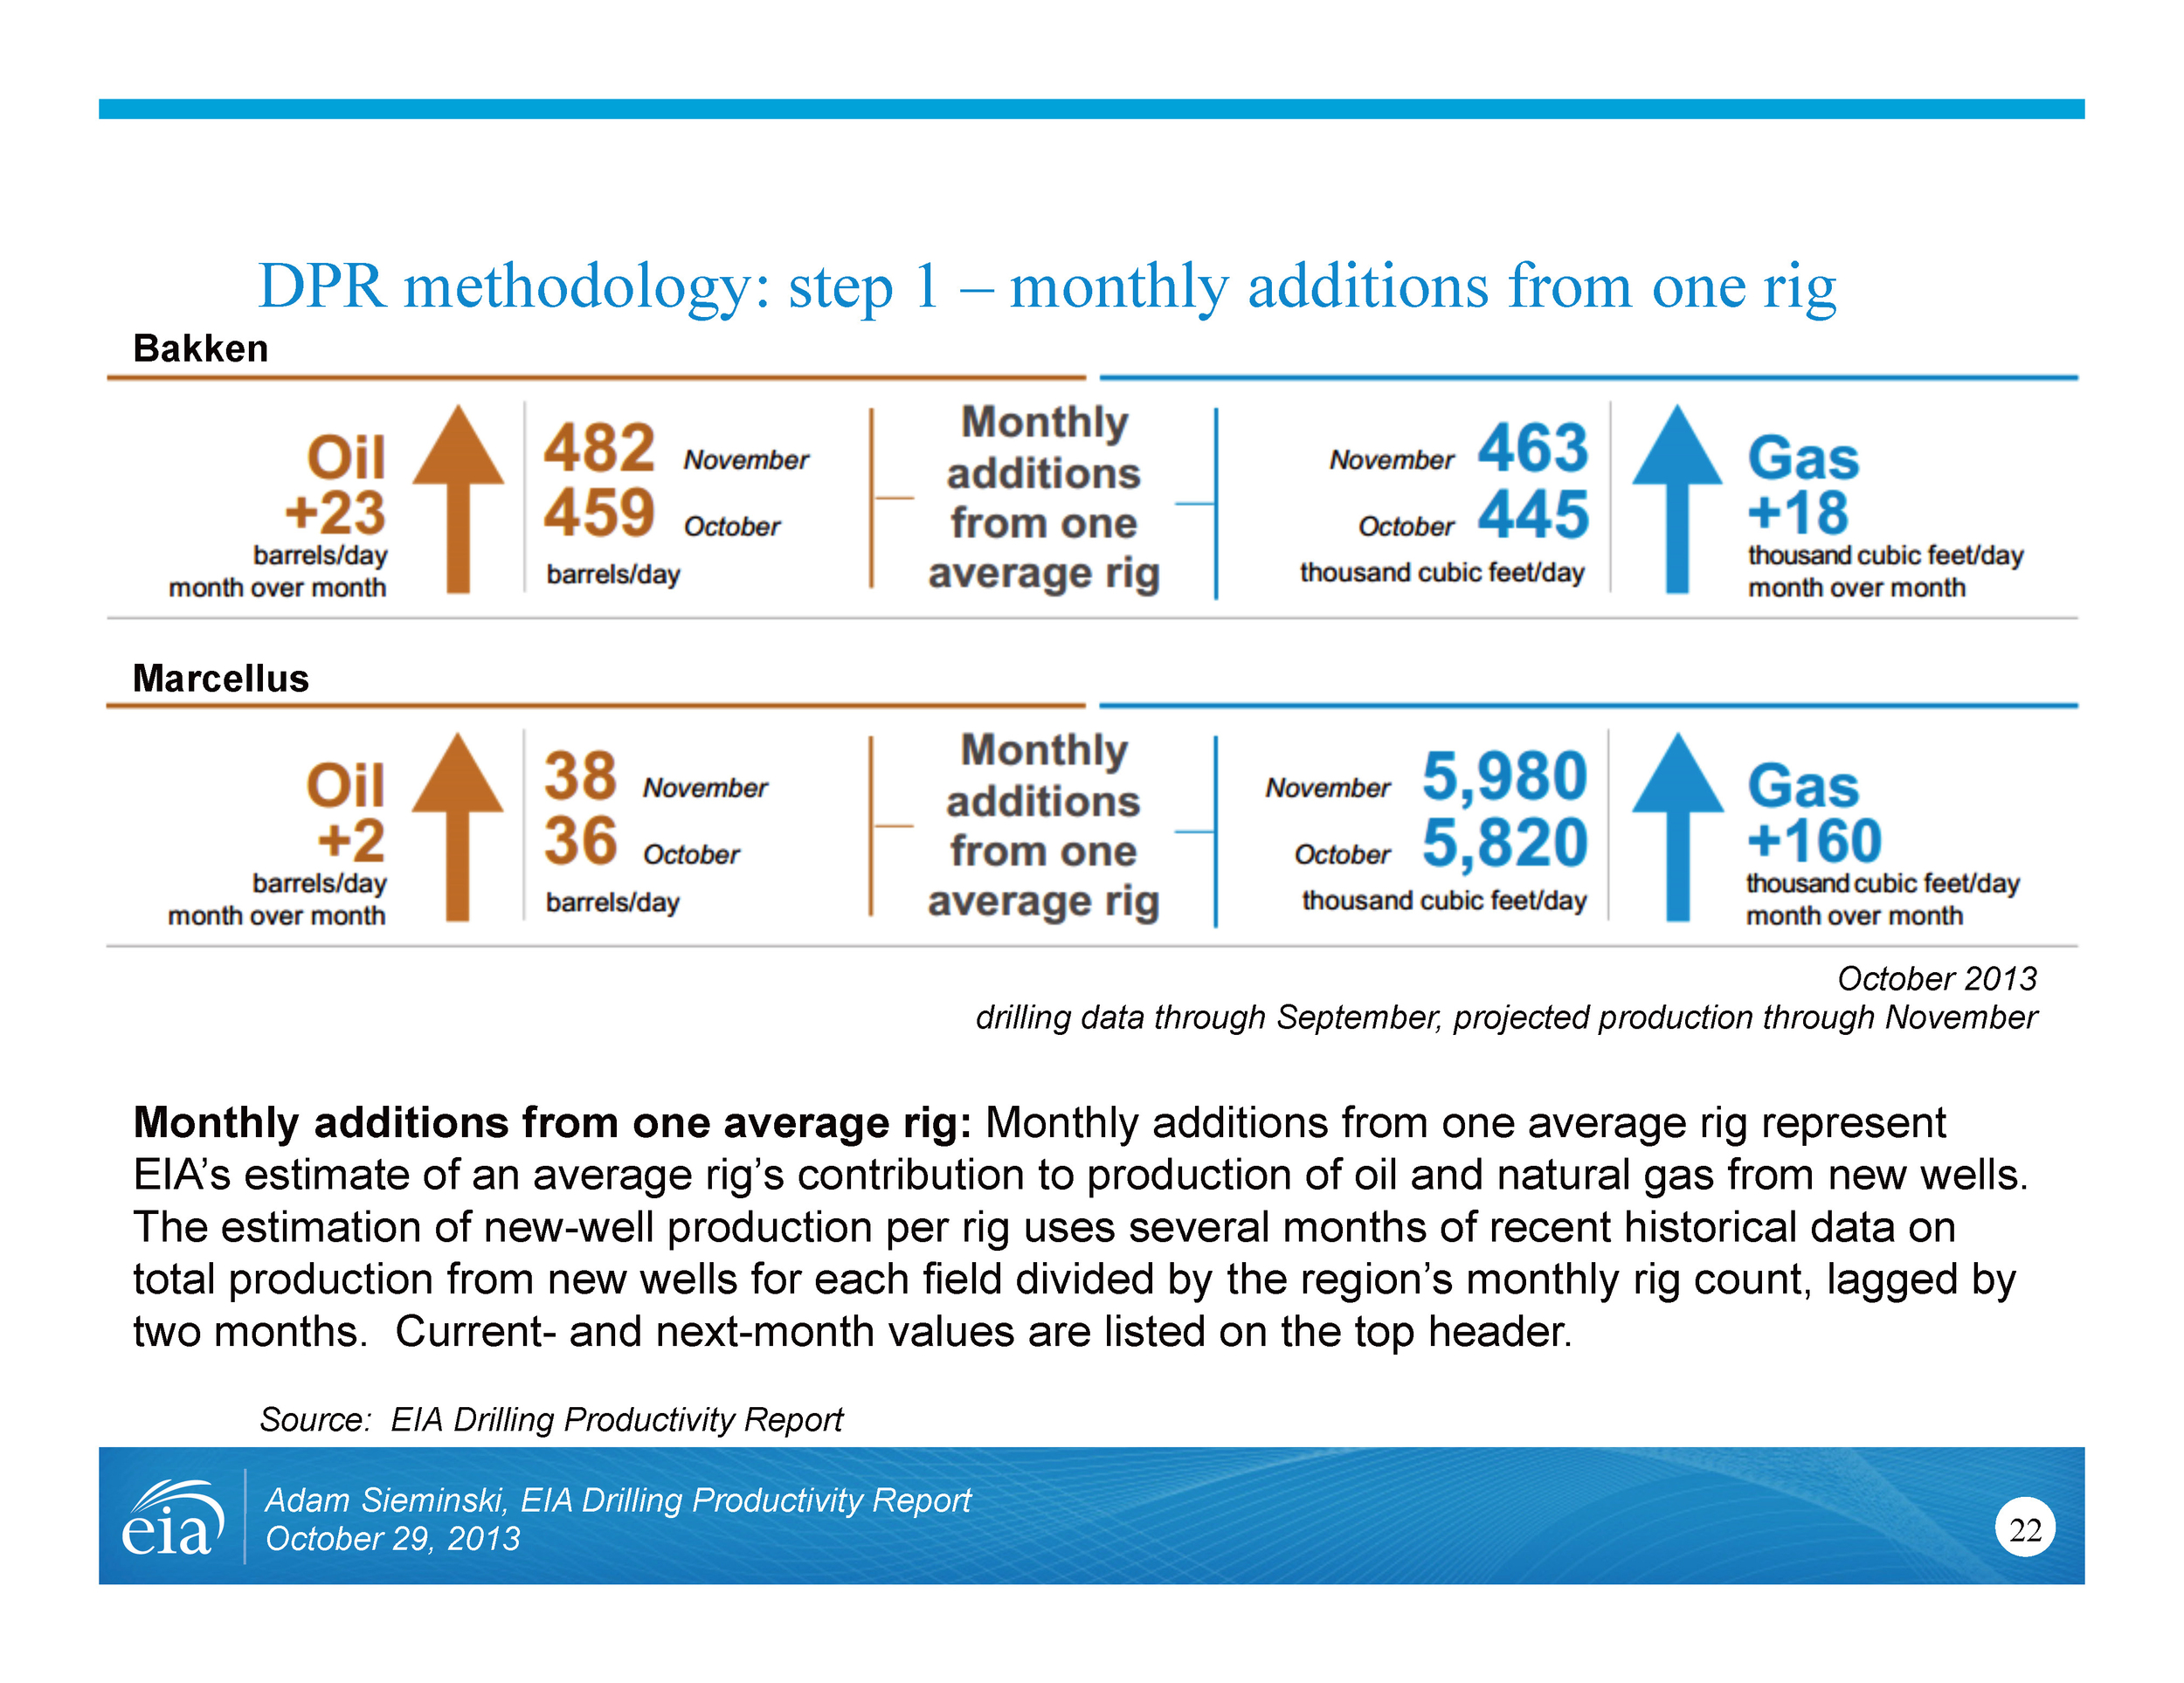 Image: DPR methodology: step 1 – monthly additions from one rig (Source: EIA Drilling Productivity Report presentation, 2013)